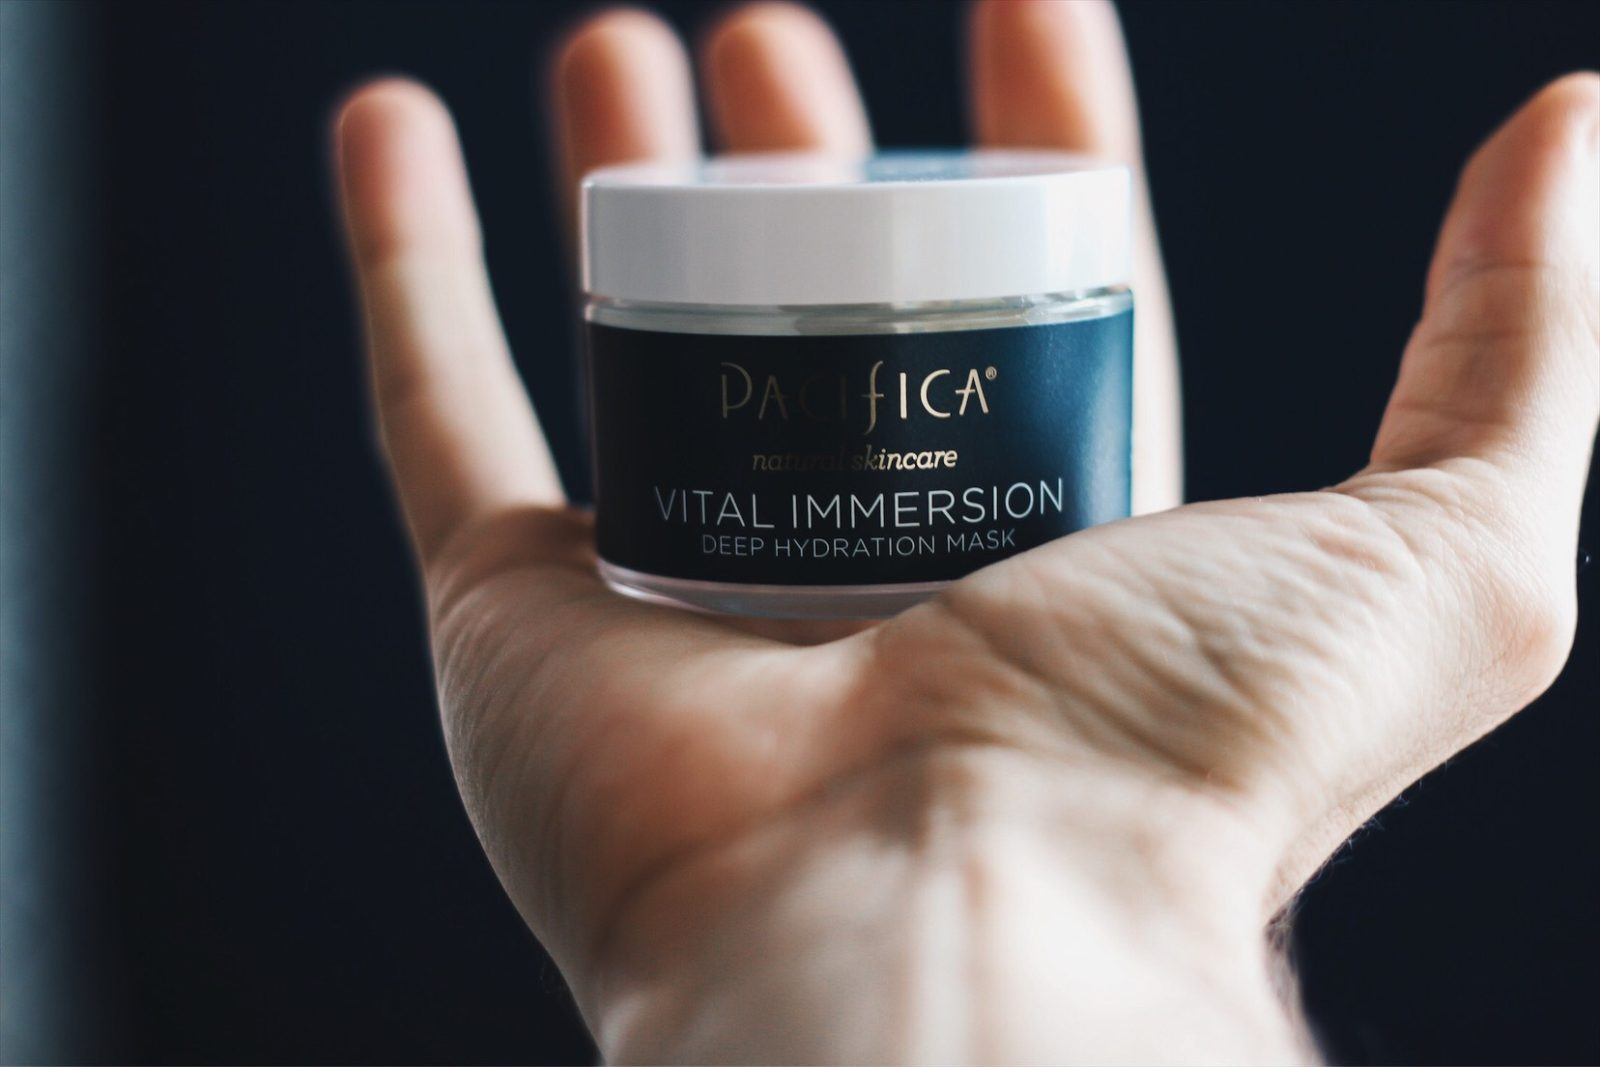 MASK MONDAY: PACIFICA VITAL IMMERSION DEEP HYDRATION MASK